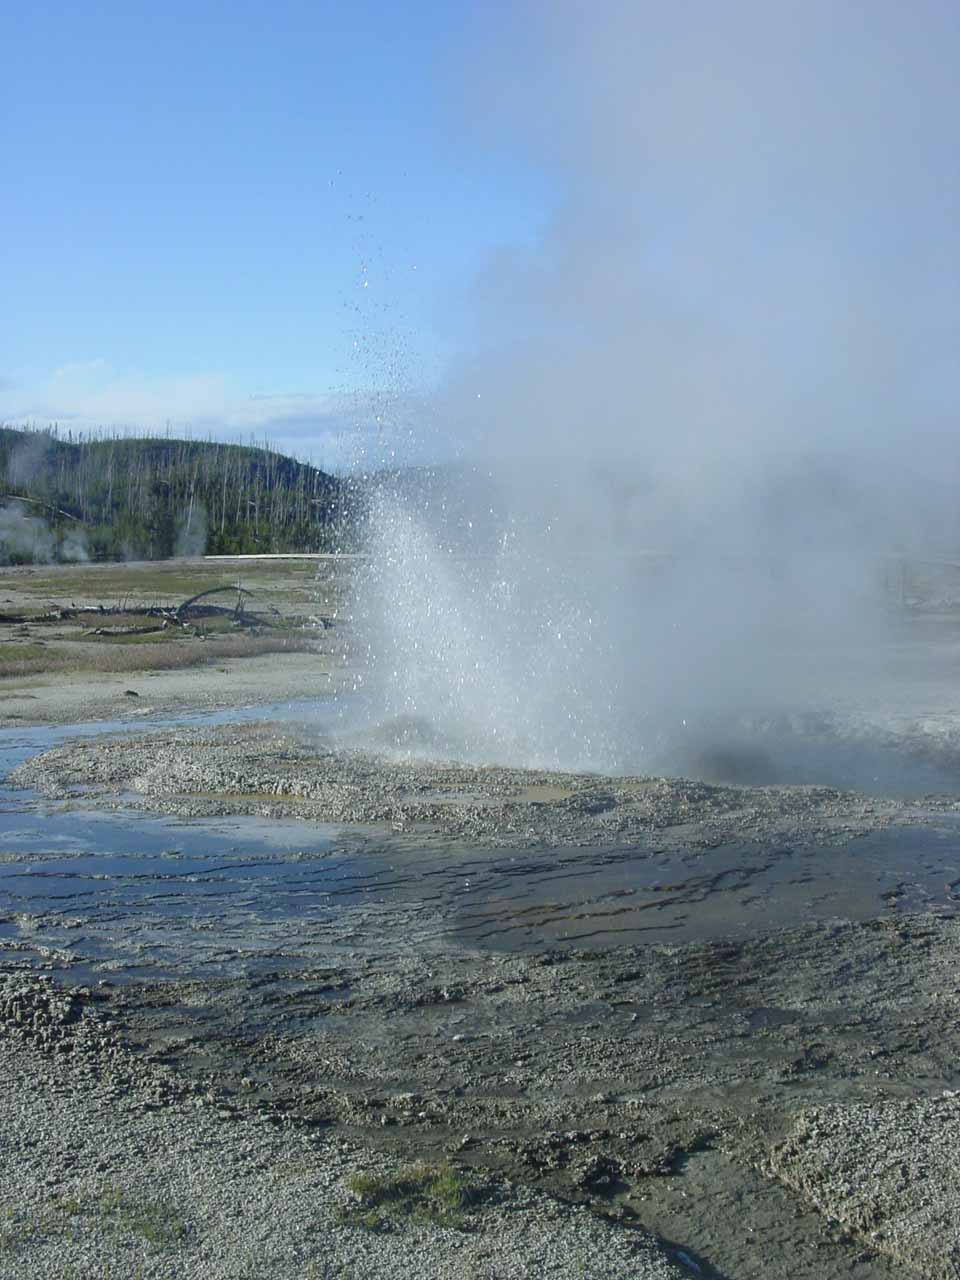 A small geyser going off